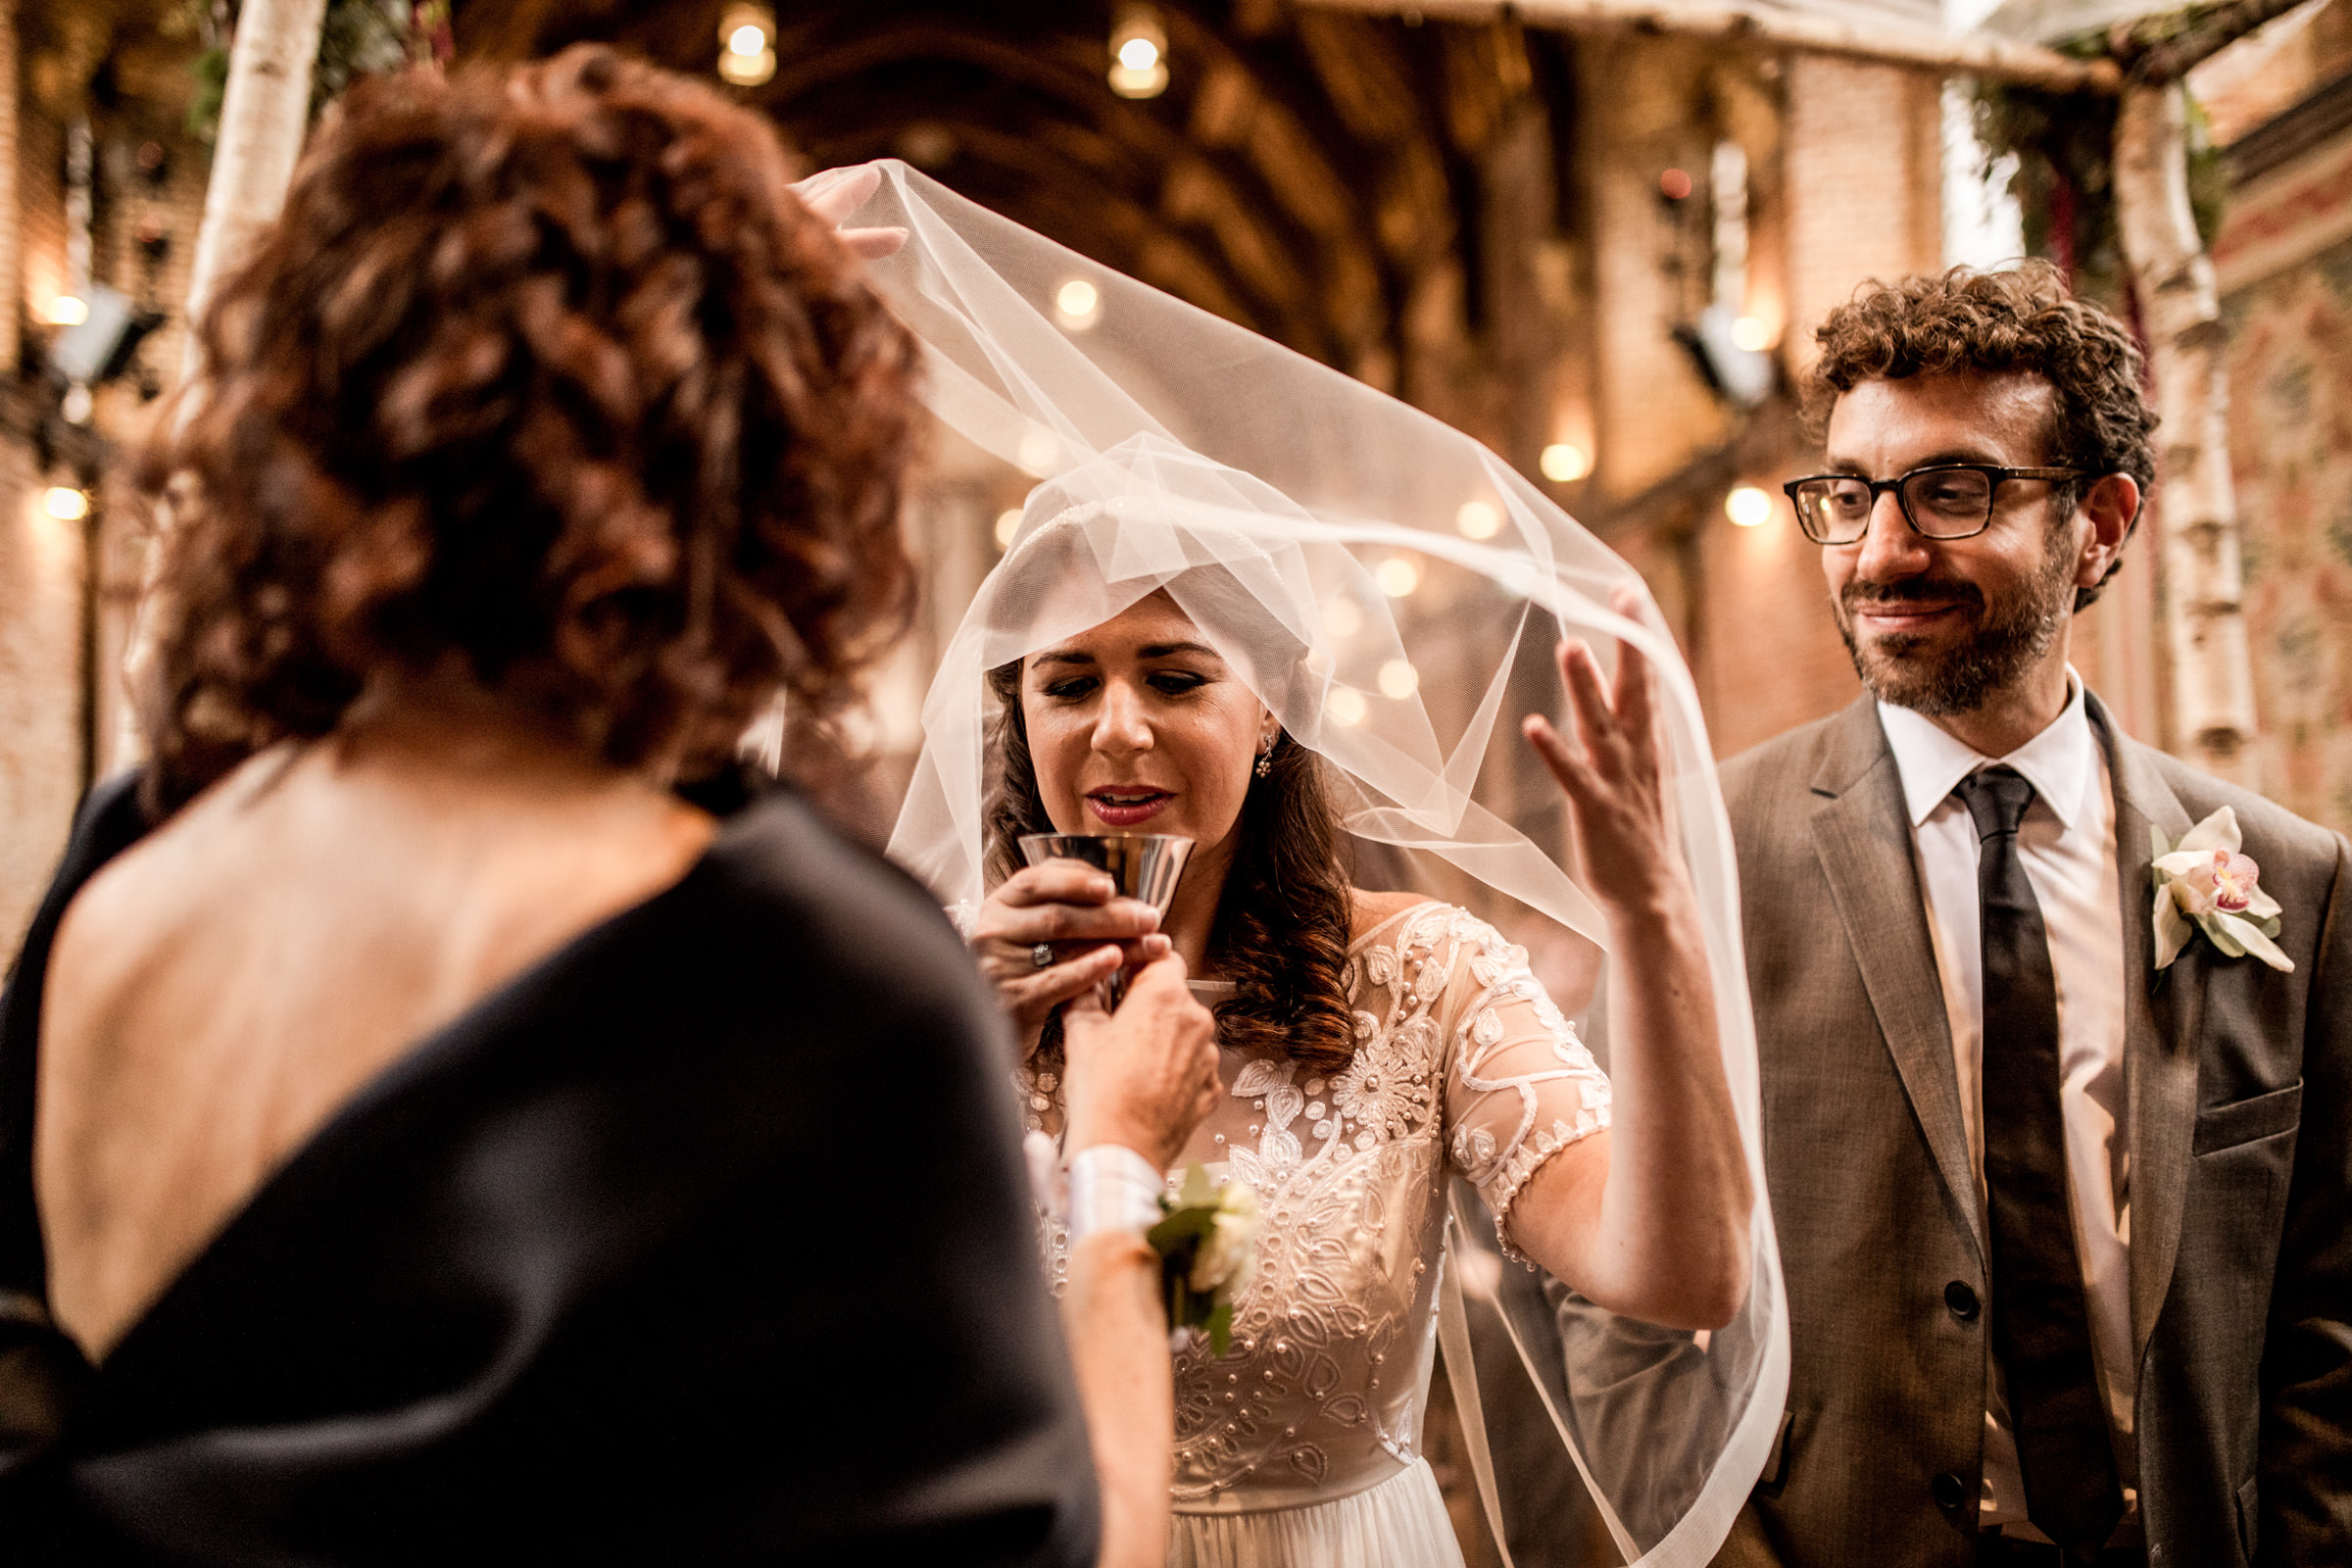 jewish wedding photographer london 014.jpg